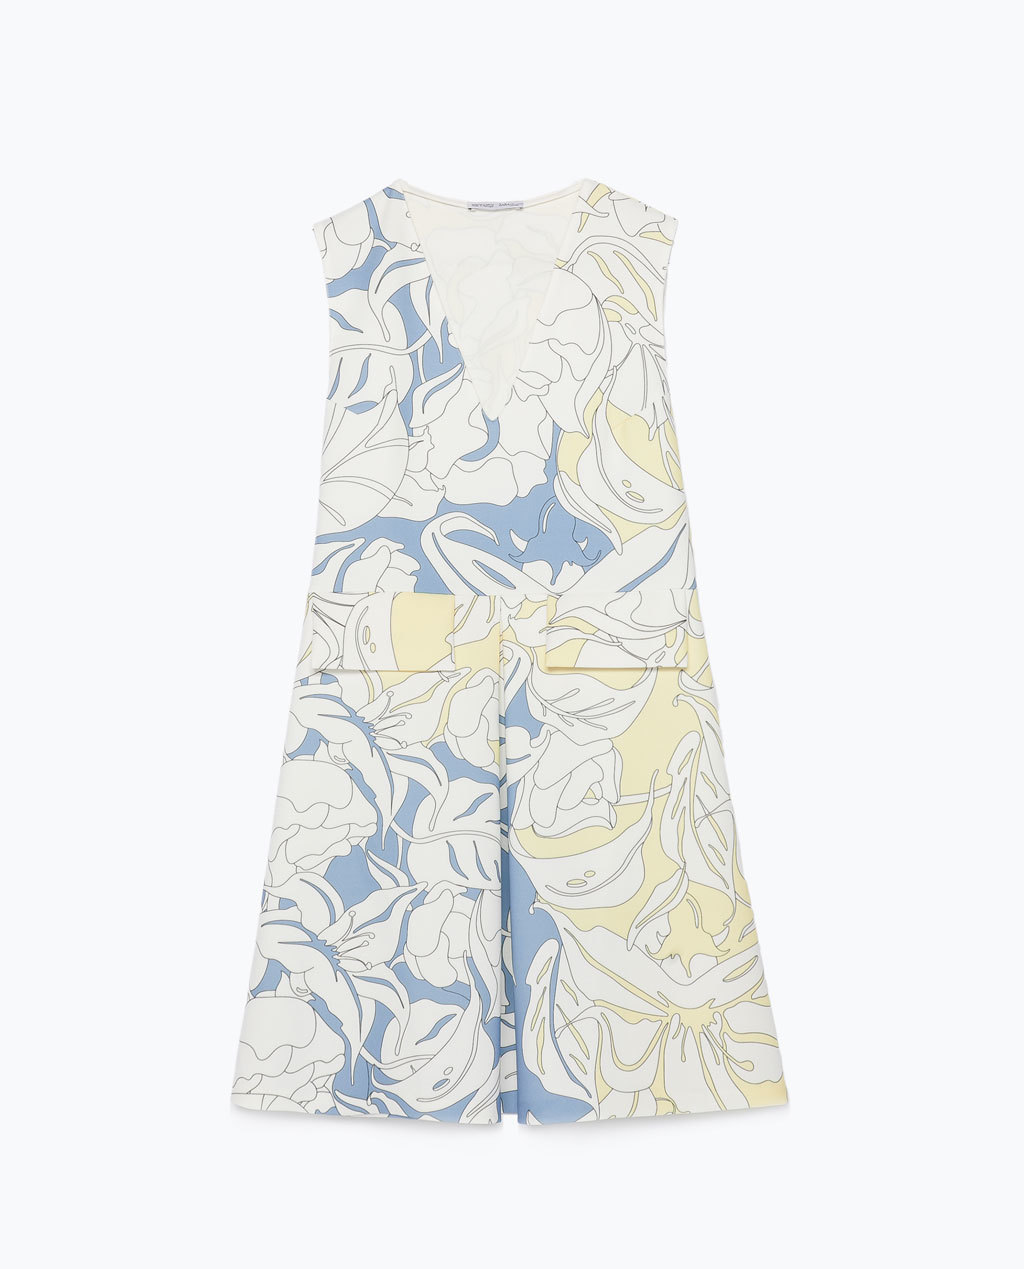 Printed Dress - style: shift; length: mid thigh; neckline: low v-neck; sleeve style: sleeveless; secondary colour: yellow; occasions: casual, creative work; fit: soft a-line; fibres: polyester/polyamide - mix; hip detail: adds bulk at the hips; predominant colour: multicoloured; sleeve length: sleeveless; pattern type: fabric; pattern size: big & busy; pattern: florals; texture group: woven light midweight; season: s/s 2015; multicoloured: multicoloured; wardrobe: highlight